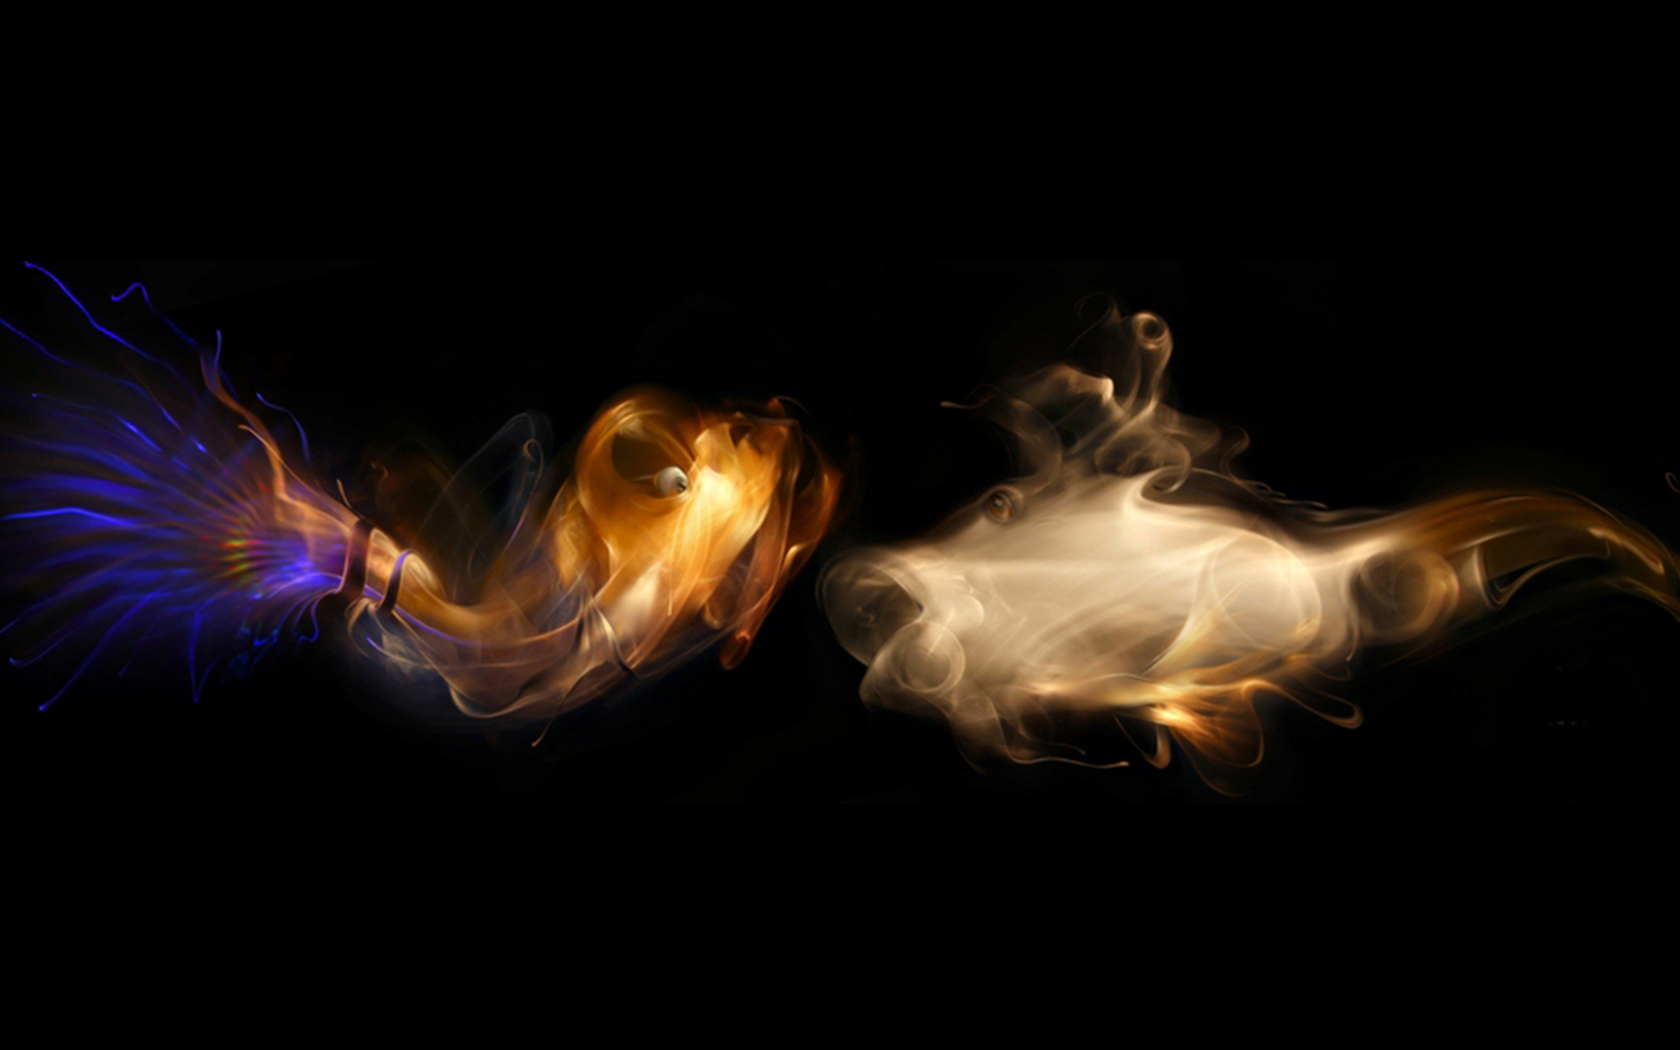 Free Download Multi Color Smoke Fish With Black Background 3d Gaming Hd Wallpapers 1920x1080 For Your Desktop Mobile Tablet Explore 48 3d Hd Color Wallpapers Free 3d Wallpaper Wallpaper